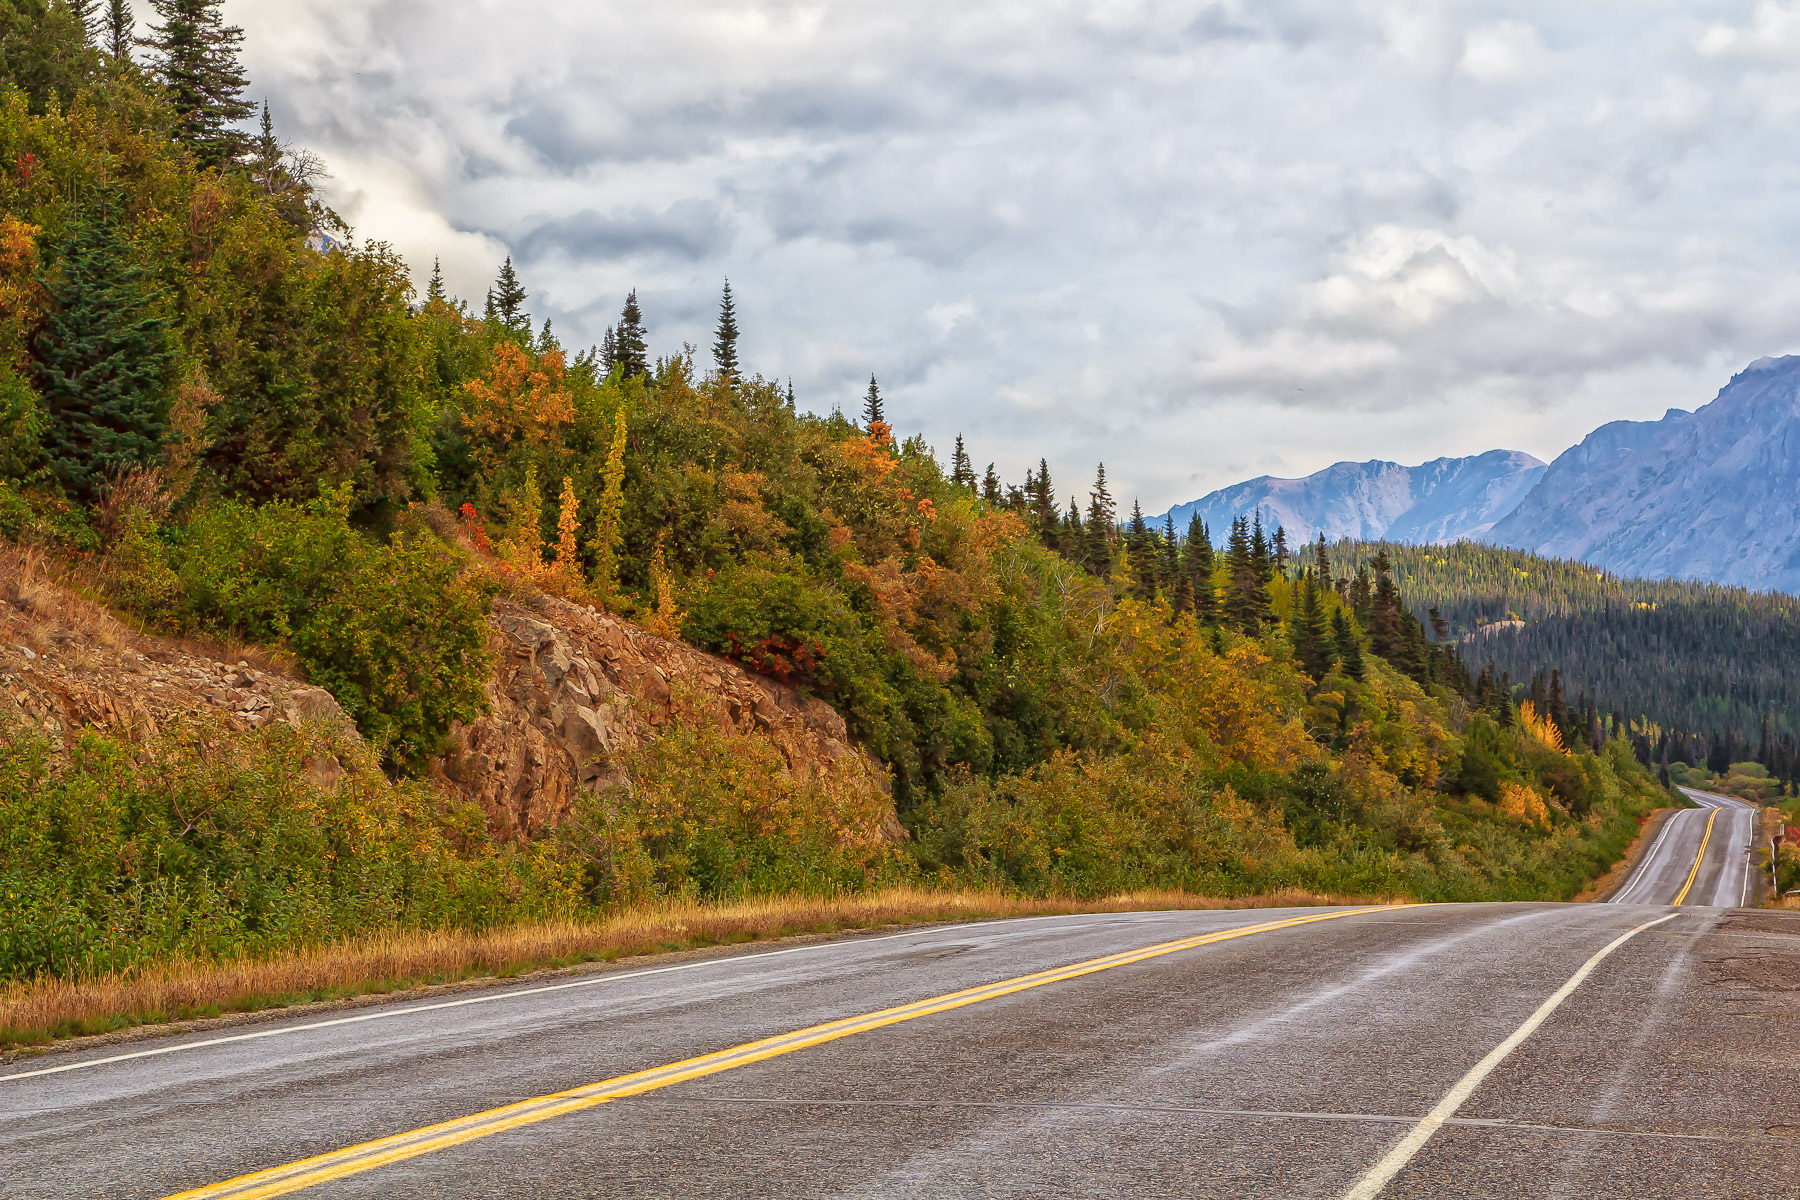 The Klondike Highway, passing through British Columbia.